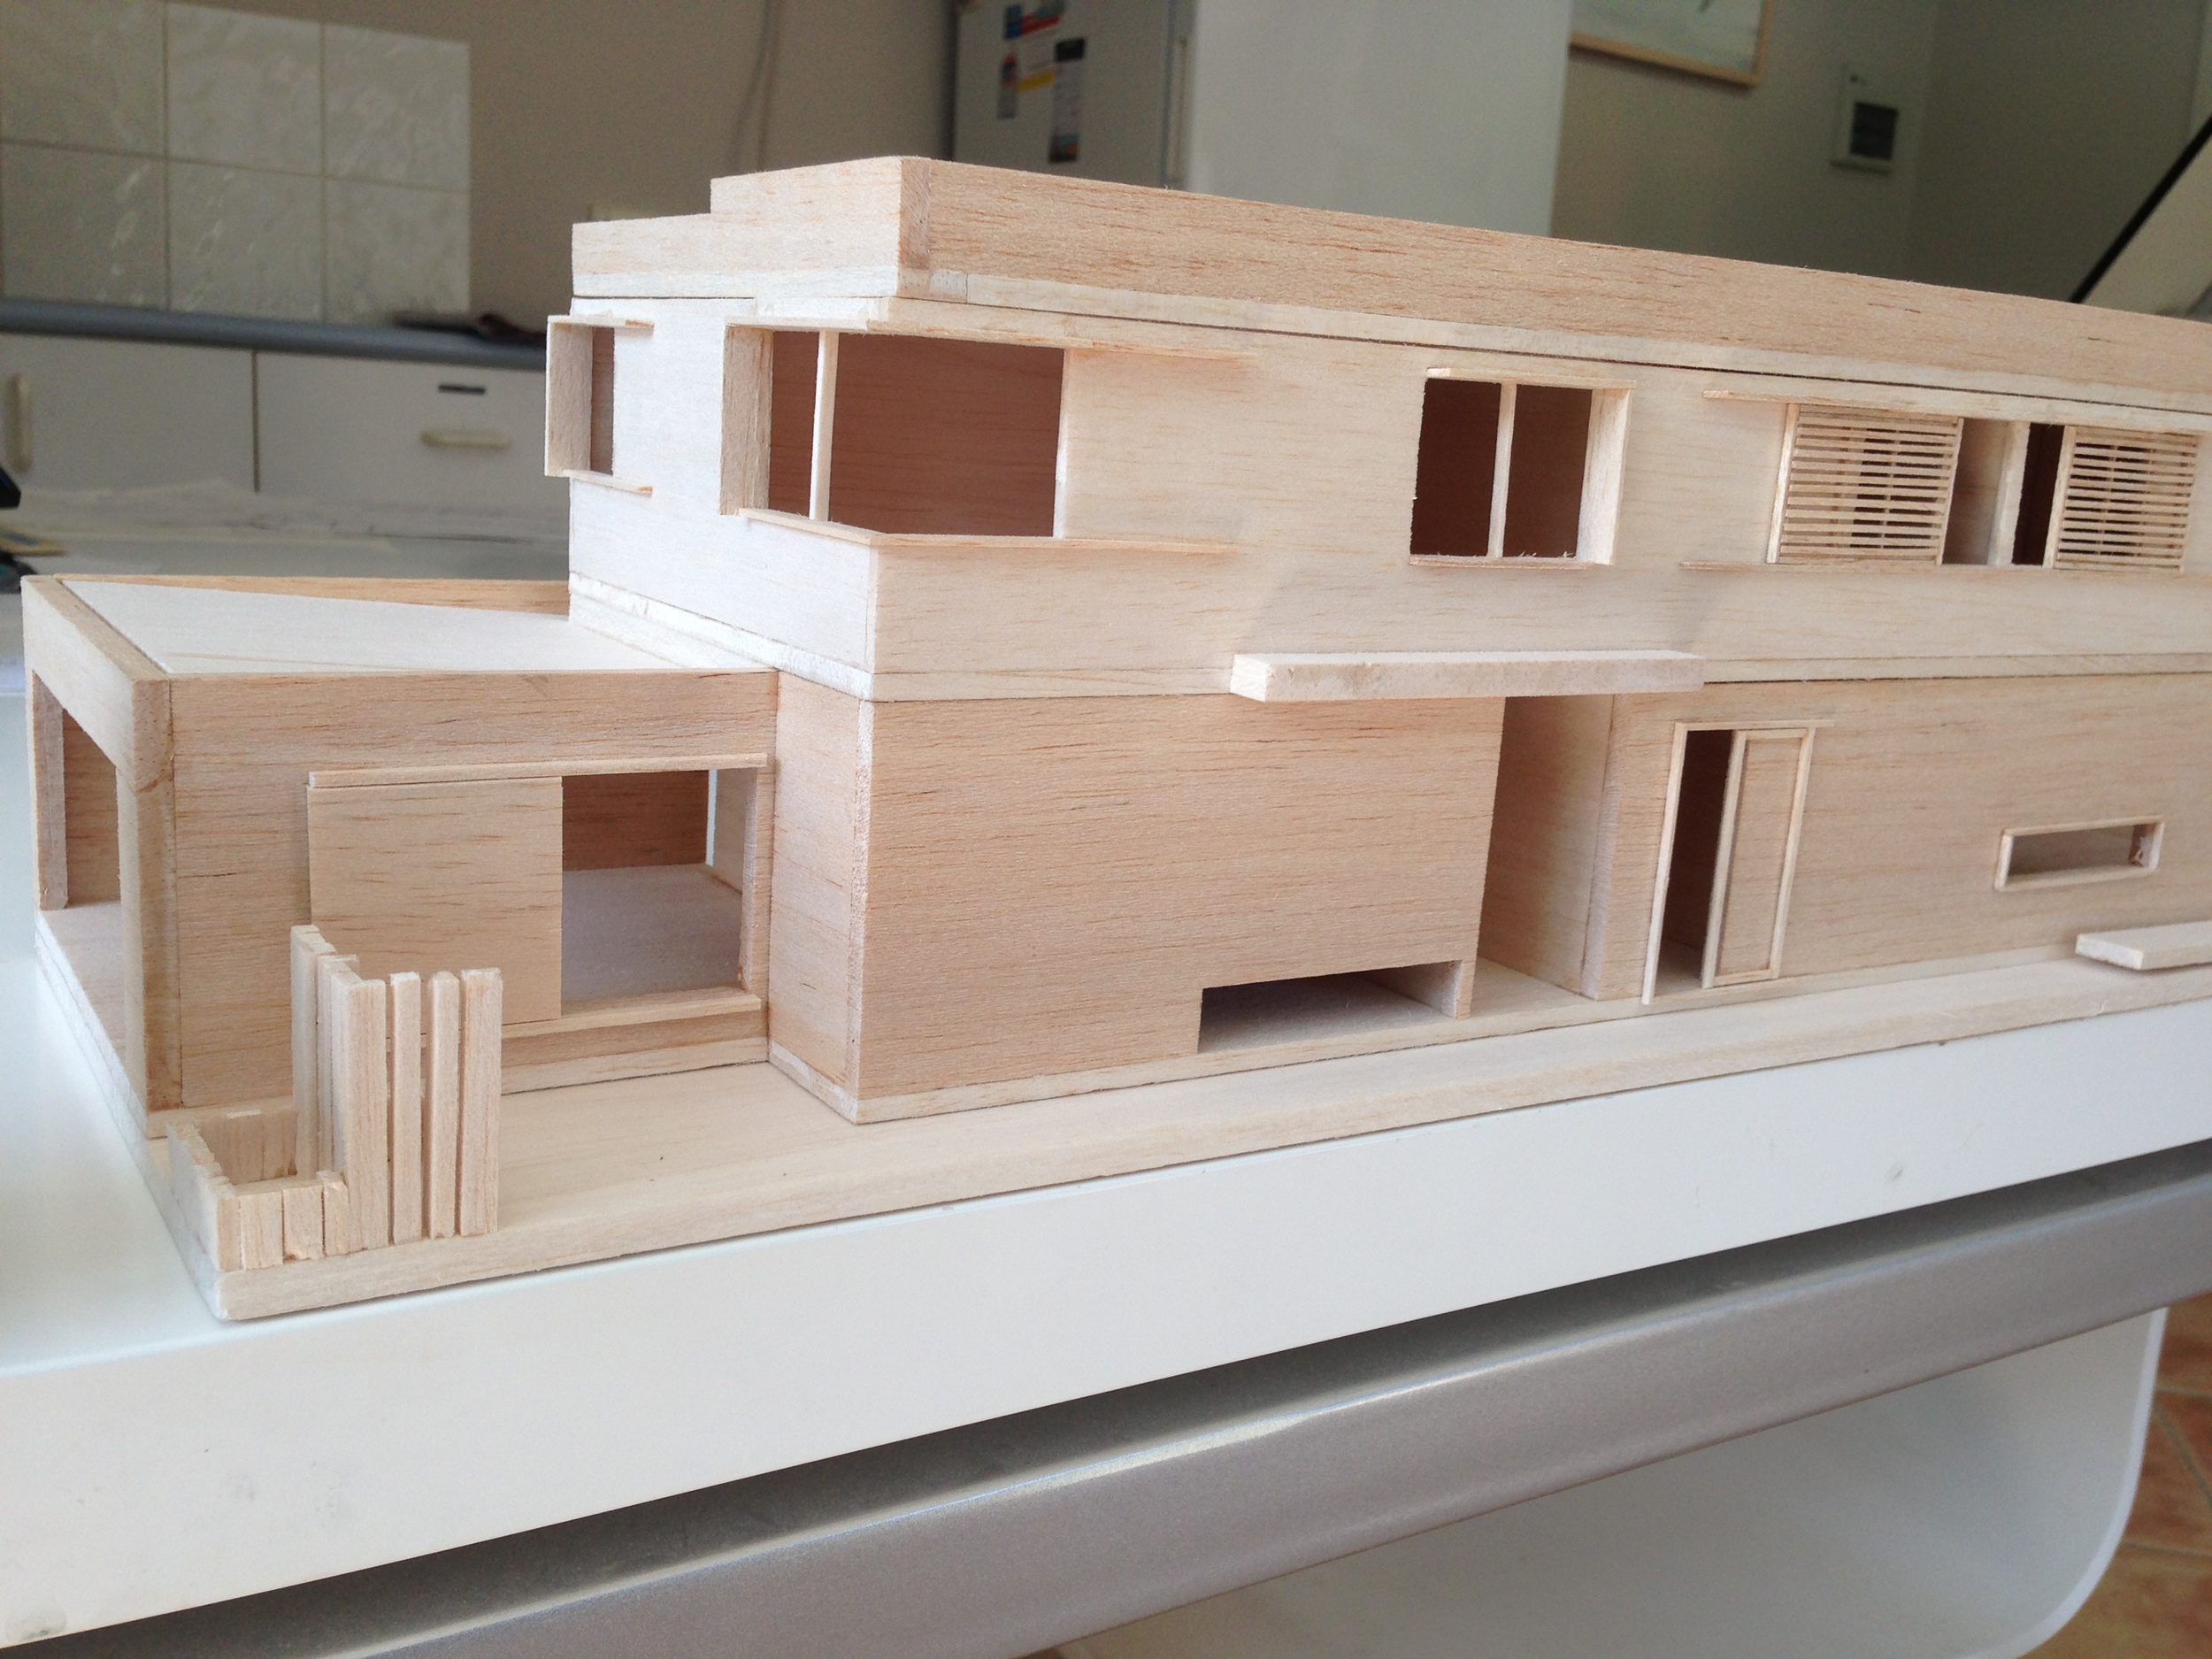 final concept model front side view of house including front fence